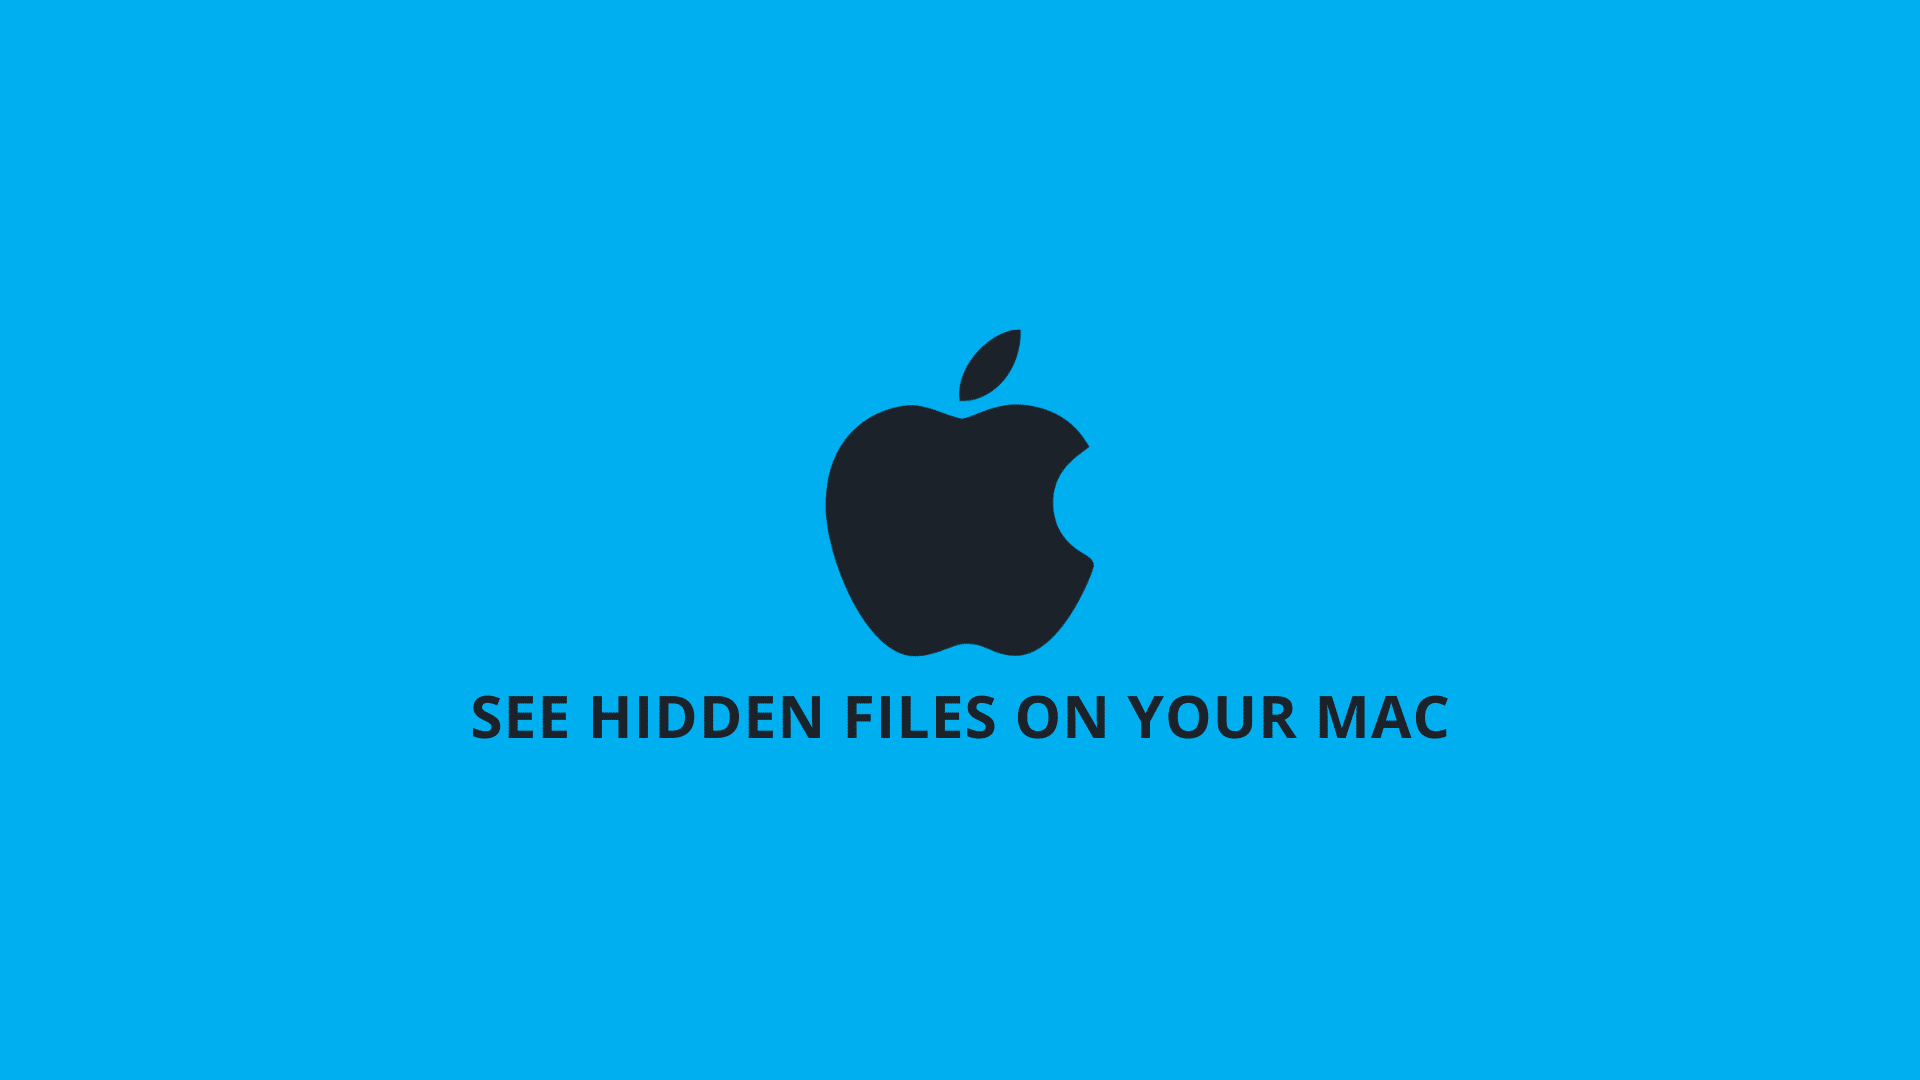 How to See Hidden Files on Your Mac